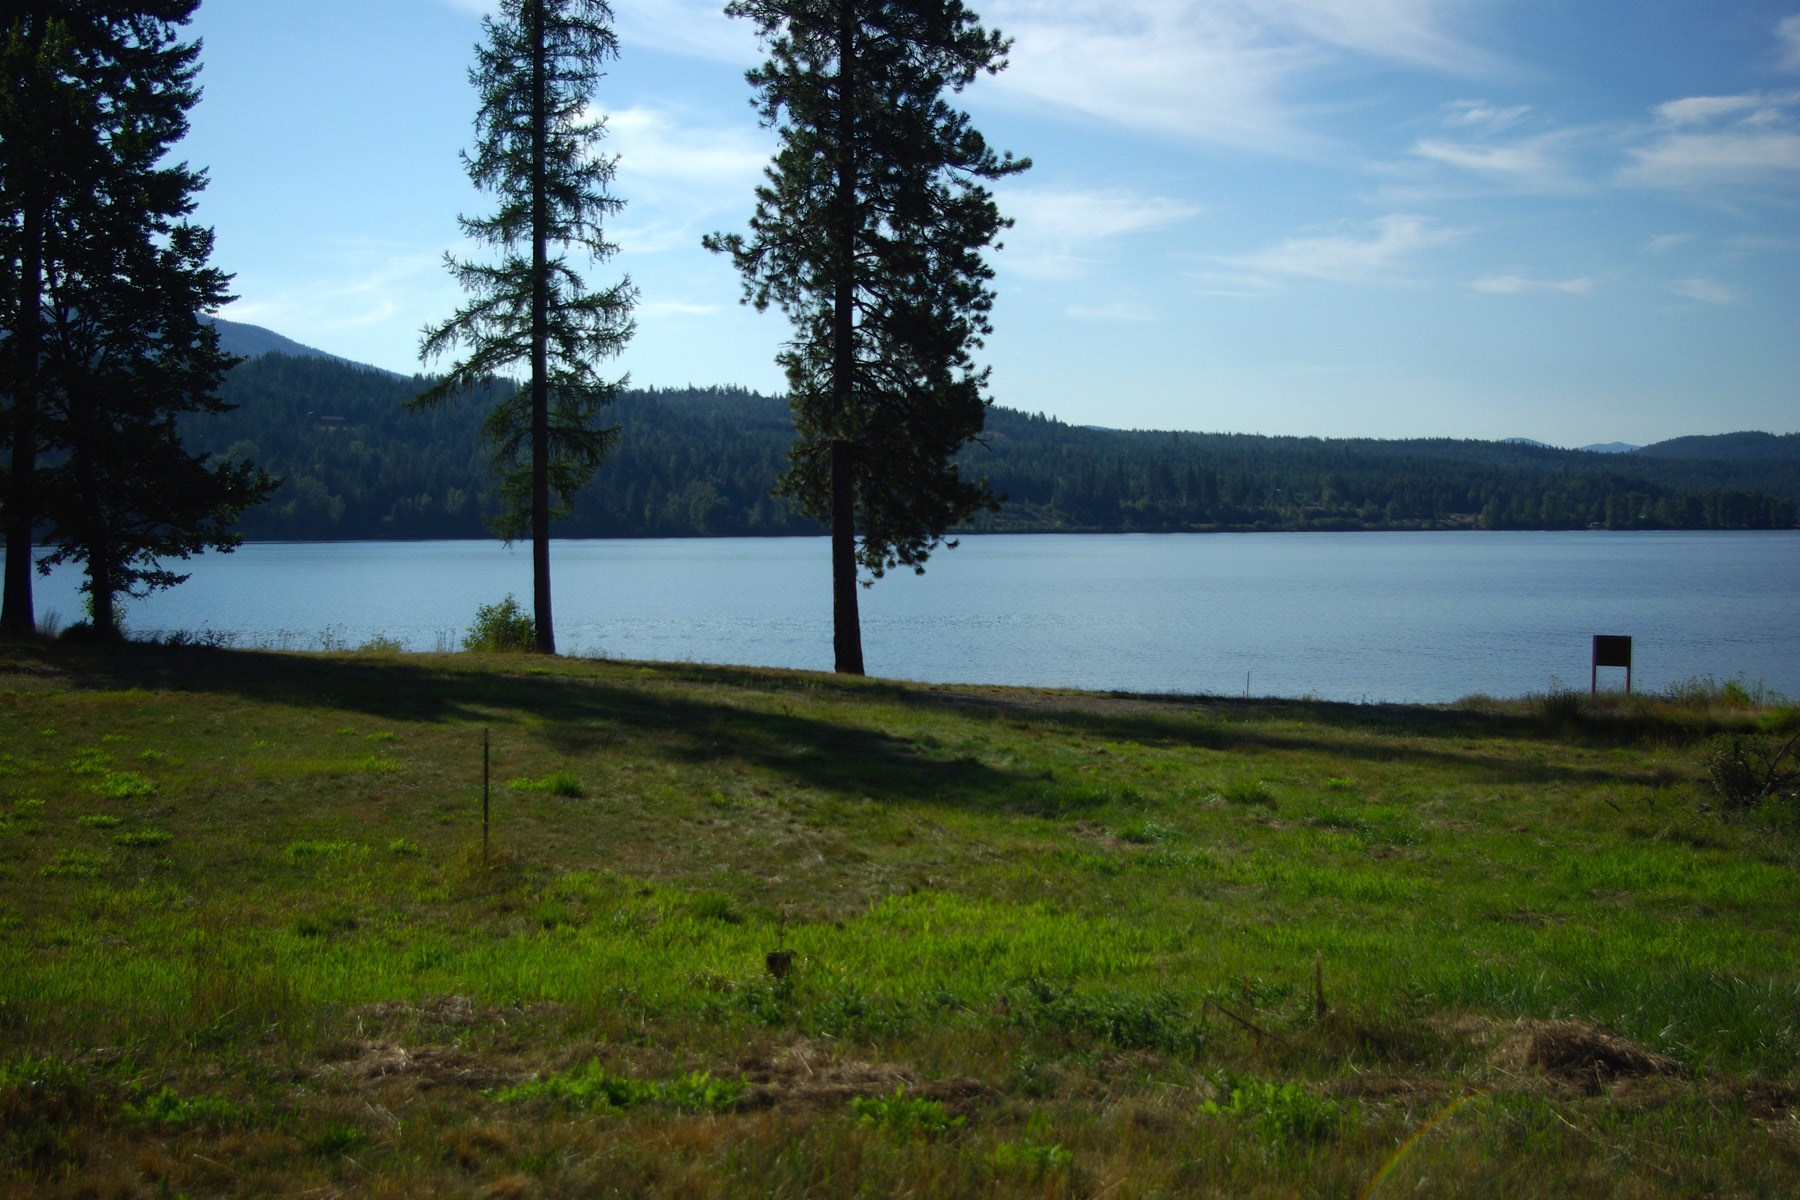 Land for Sale at Your own private sandy beach on Lake Cocolalla, Lot 3 Lot 3 Sandy Beach Ln, Cocolalla, Idaho, 83813 United States